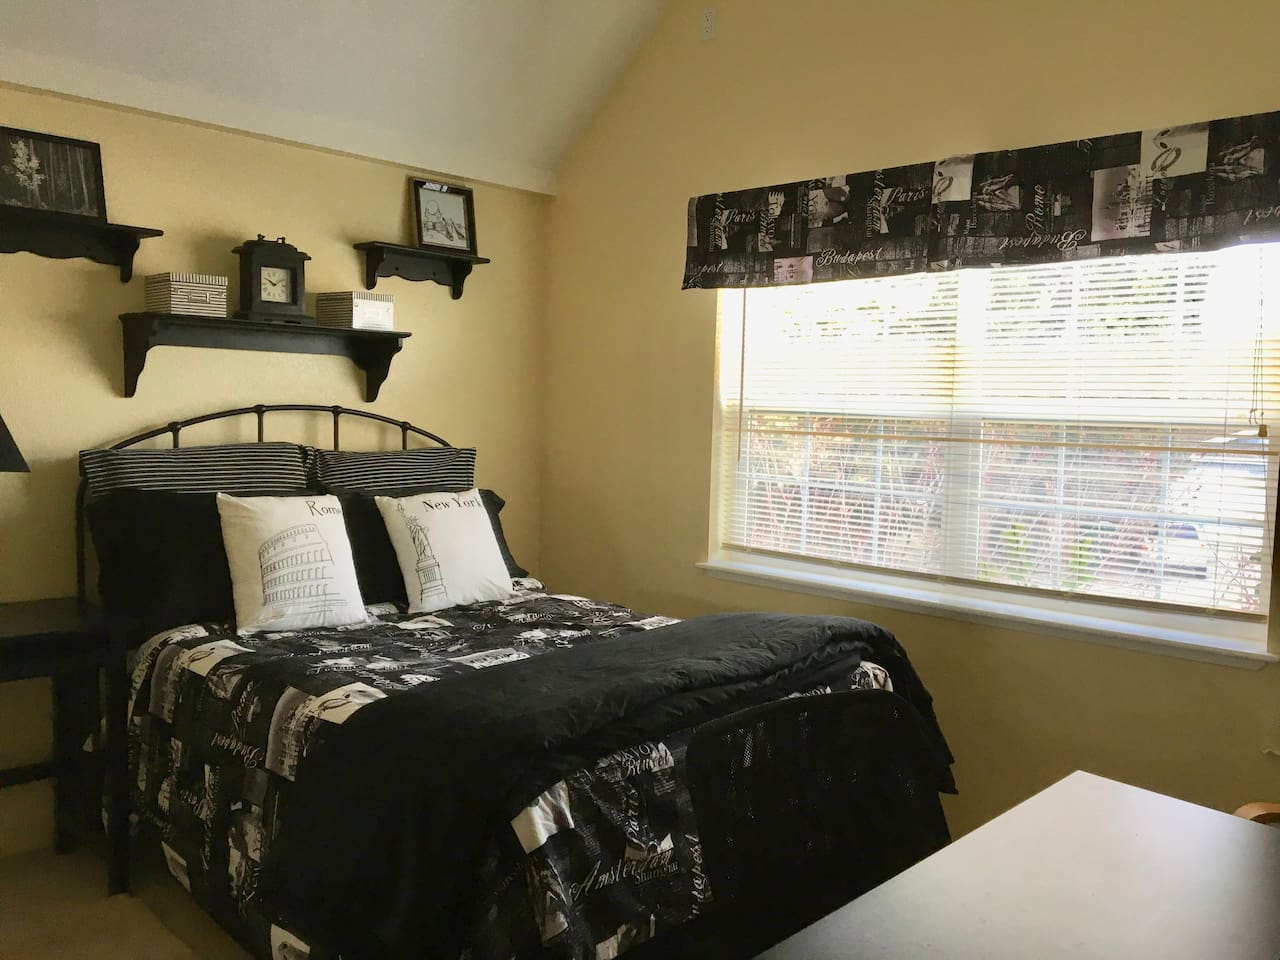 Bedroom Number l features a full-size comfy cozy bed, dresser, desk, chair/ ottoman and private bath.